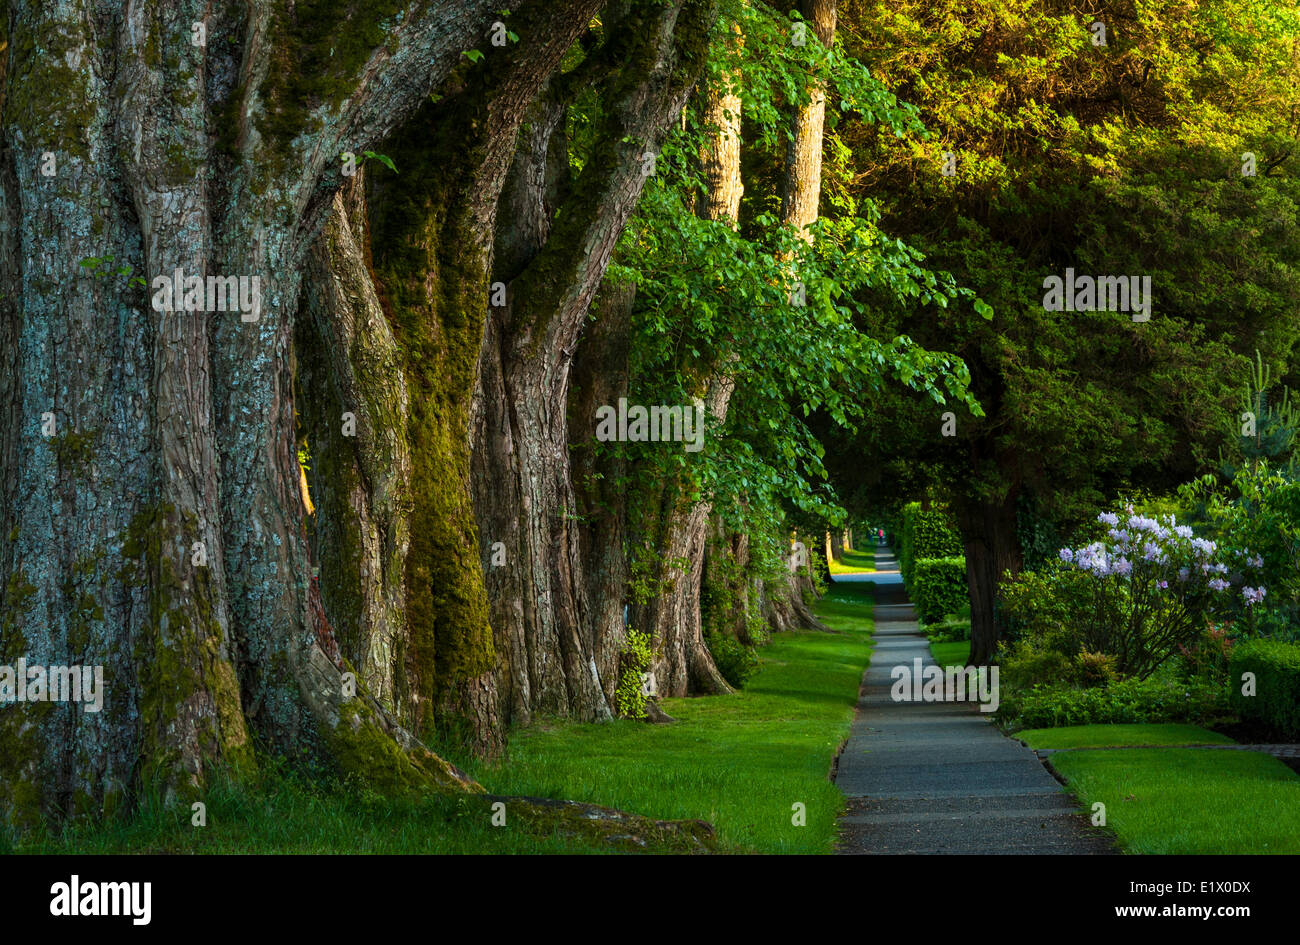 Promenade bordée d'arbres, Kerrisdale, Vancouver, British Columbia, Canada Photo Stock